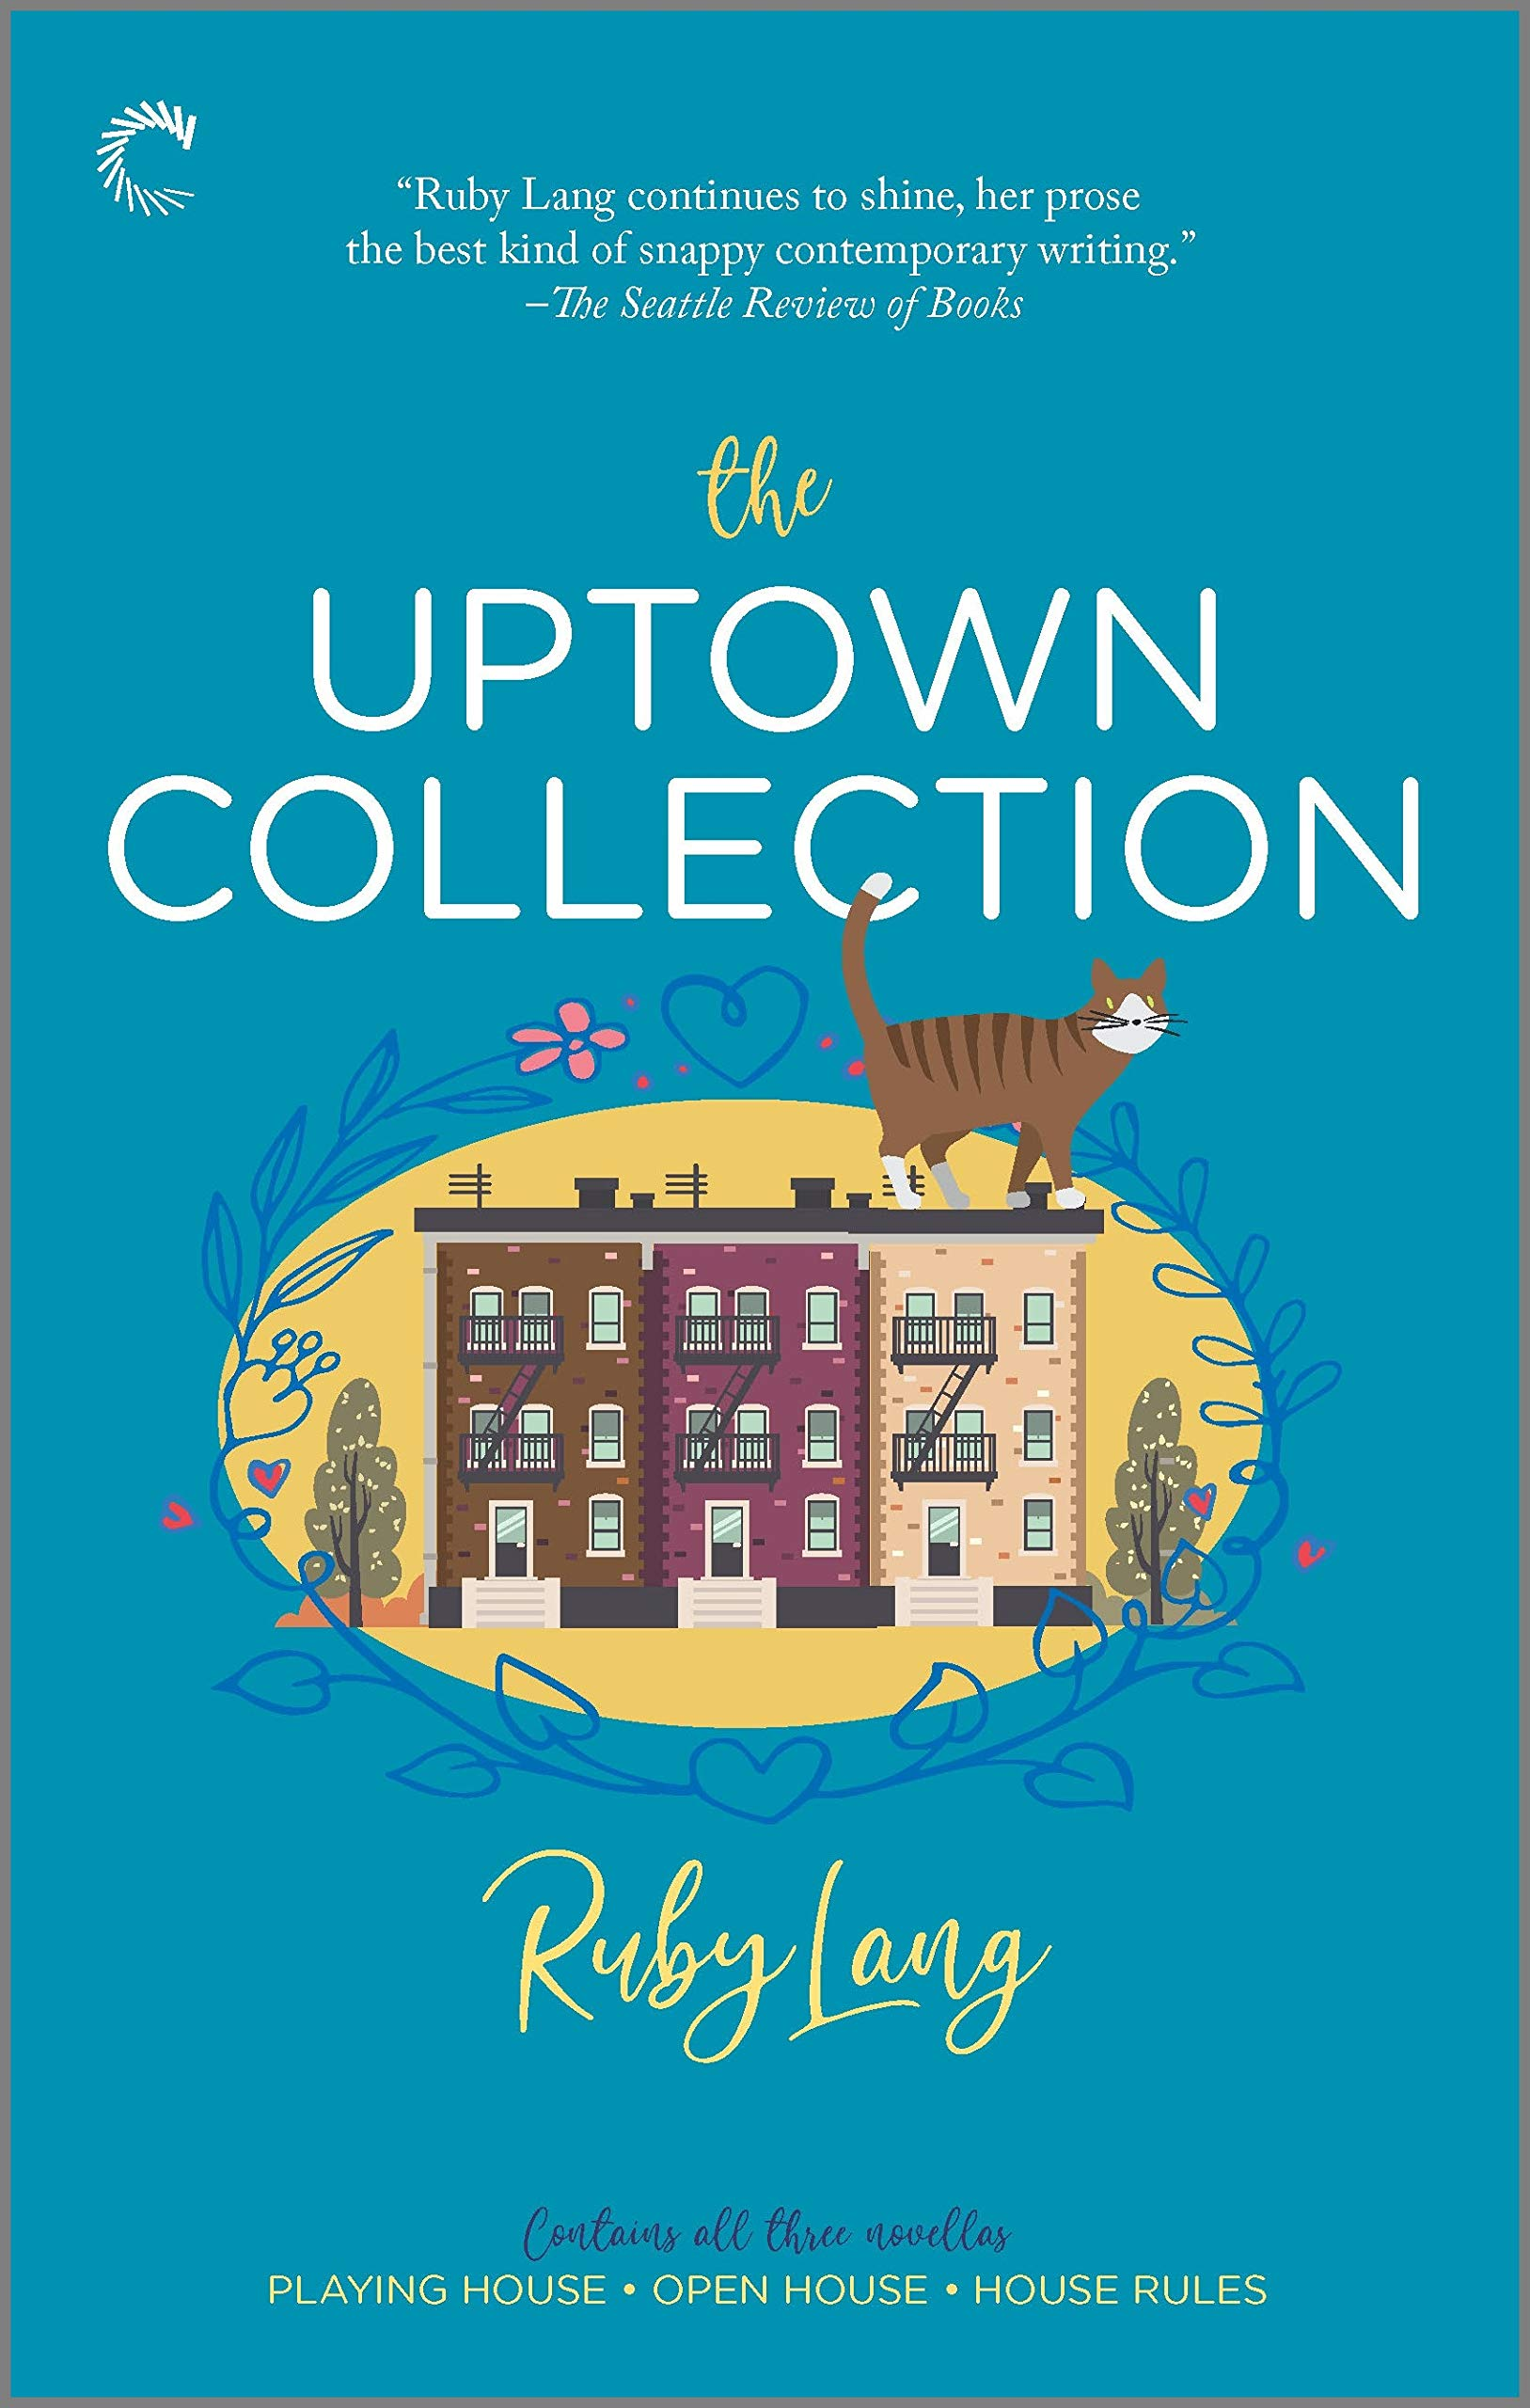 The Uptown Collection: Lang, Ruby: 9781335008541: Amazon.com: Books